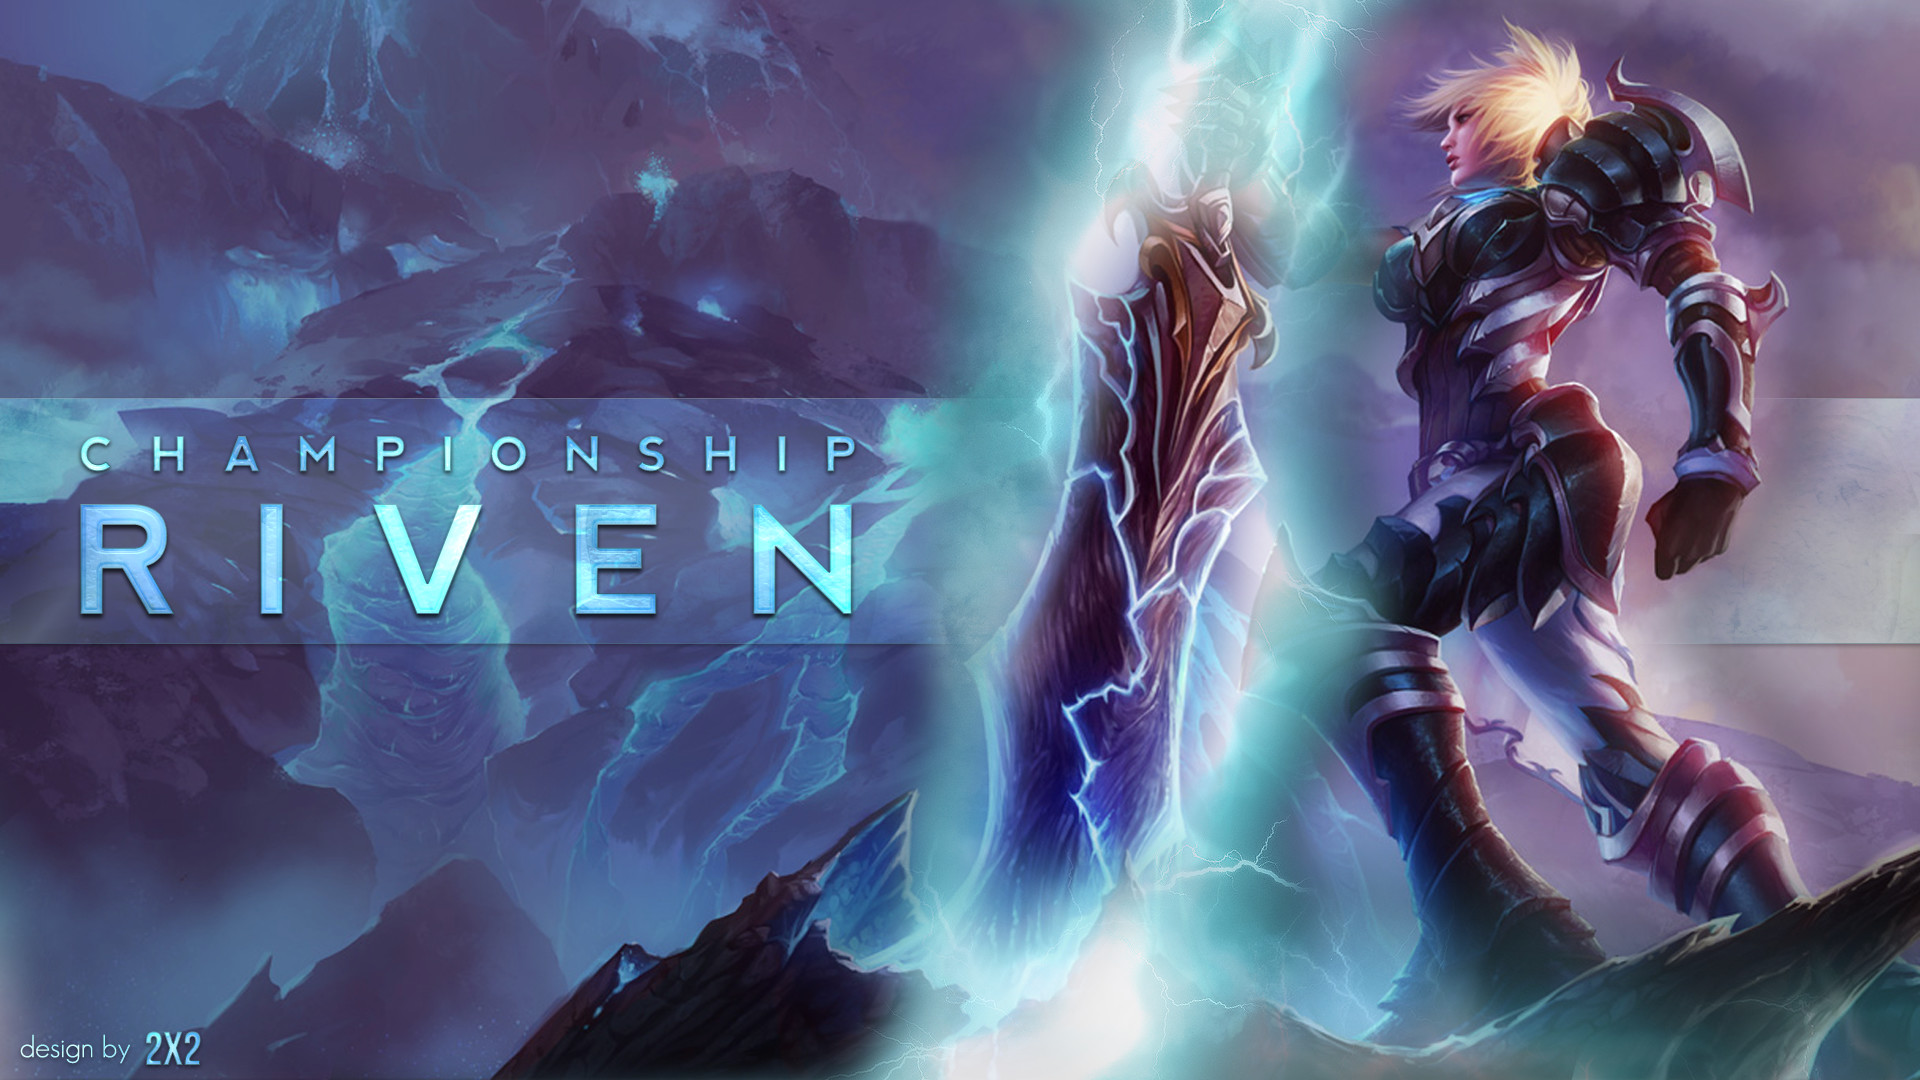 1920x1080 Championship Riven Wallpaper - WallpaperSafari